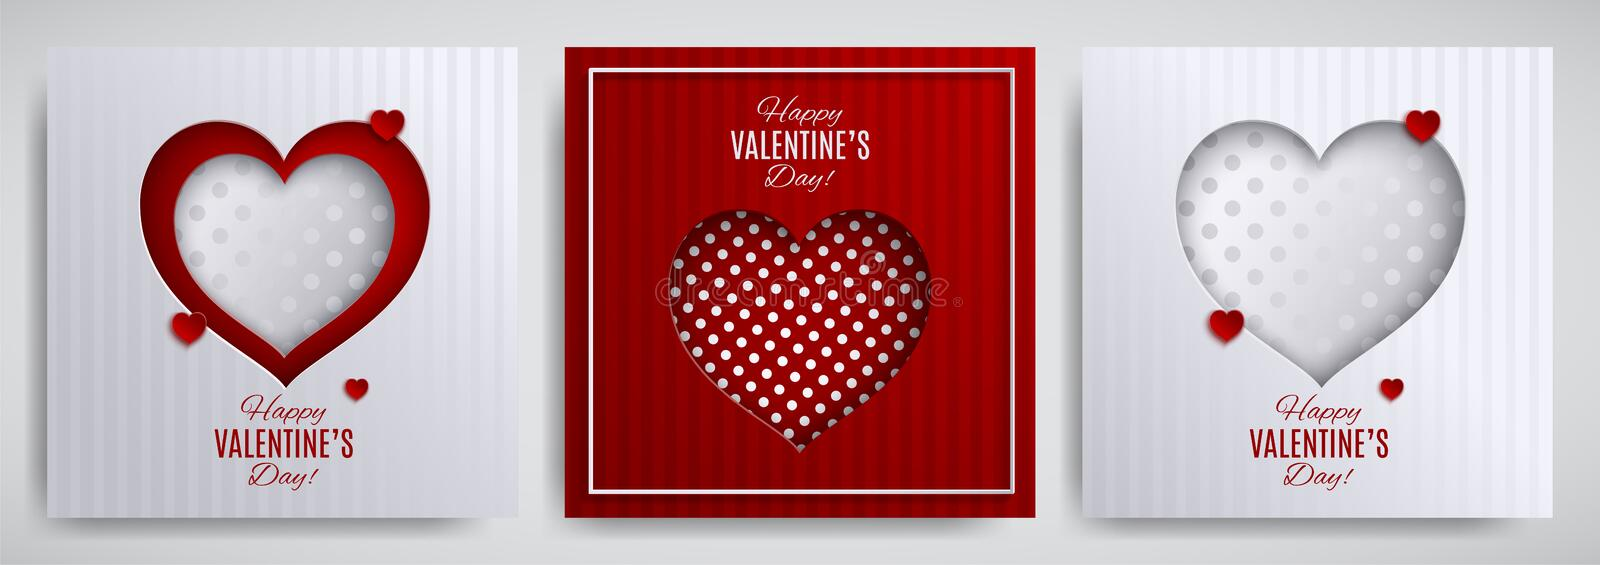 Valentine`s day design set. Greeting card, poster, banner collection. Cutted paper heart on white / red striped / dotted satin bac royalty free illustration